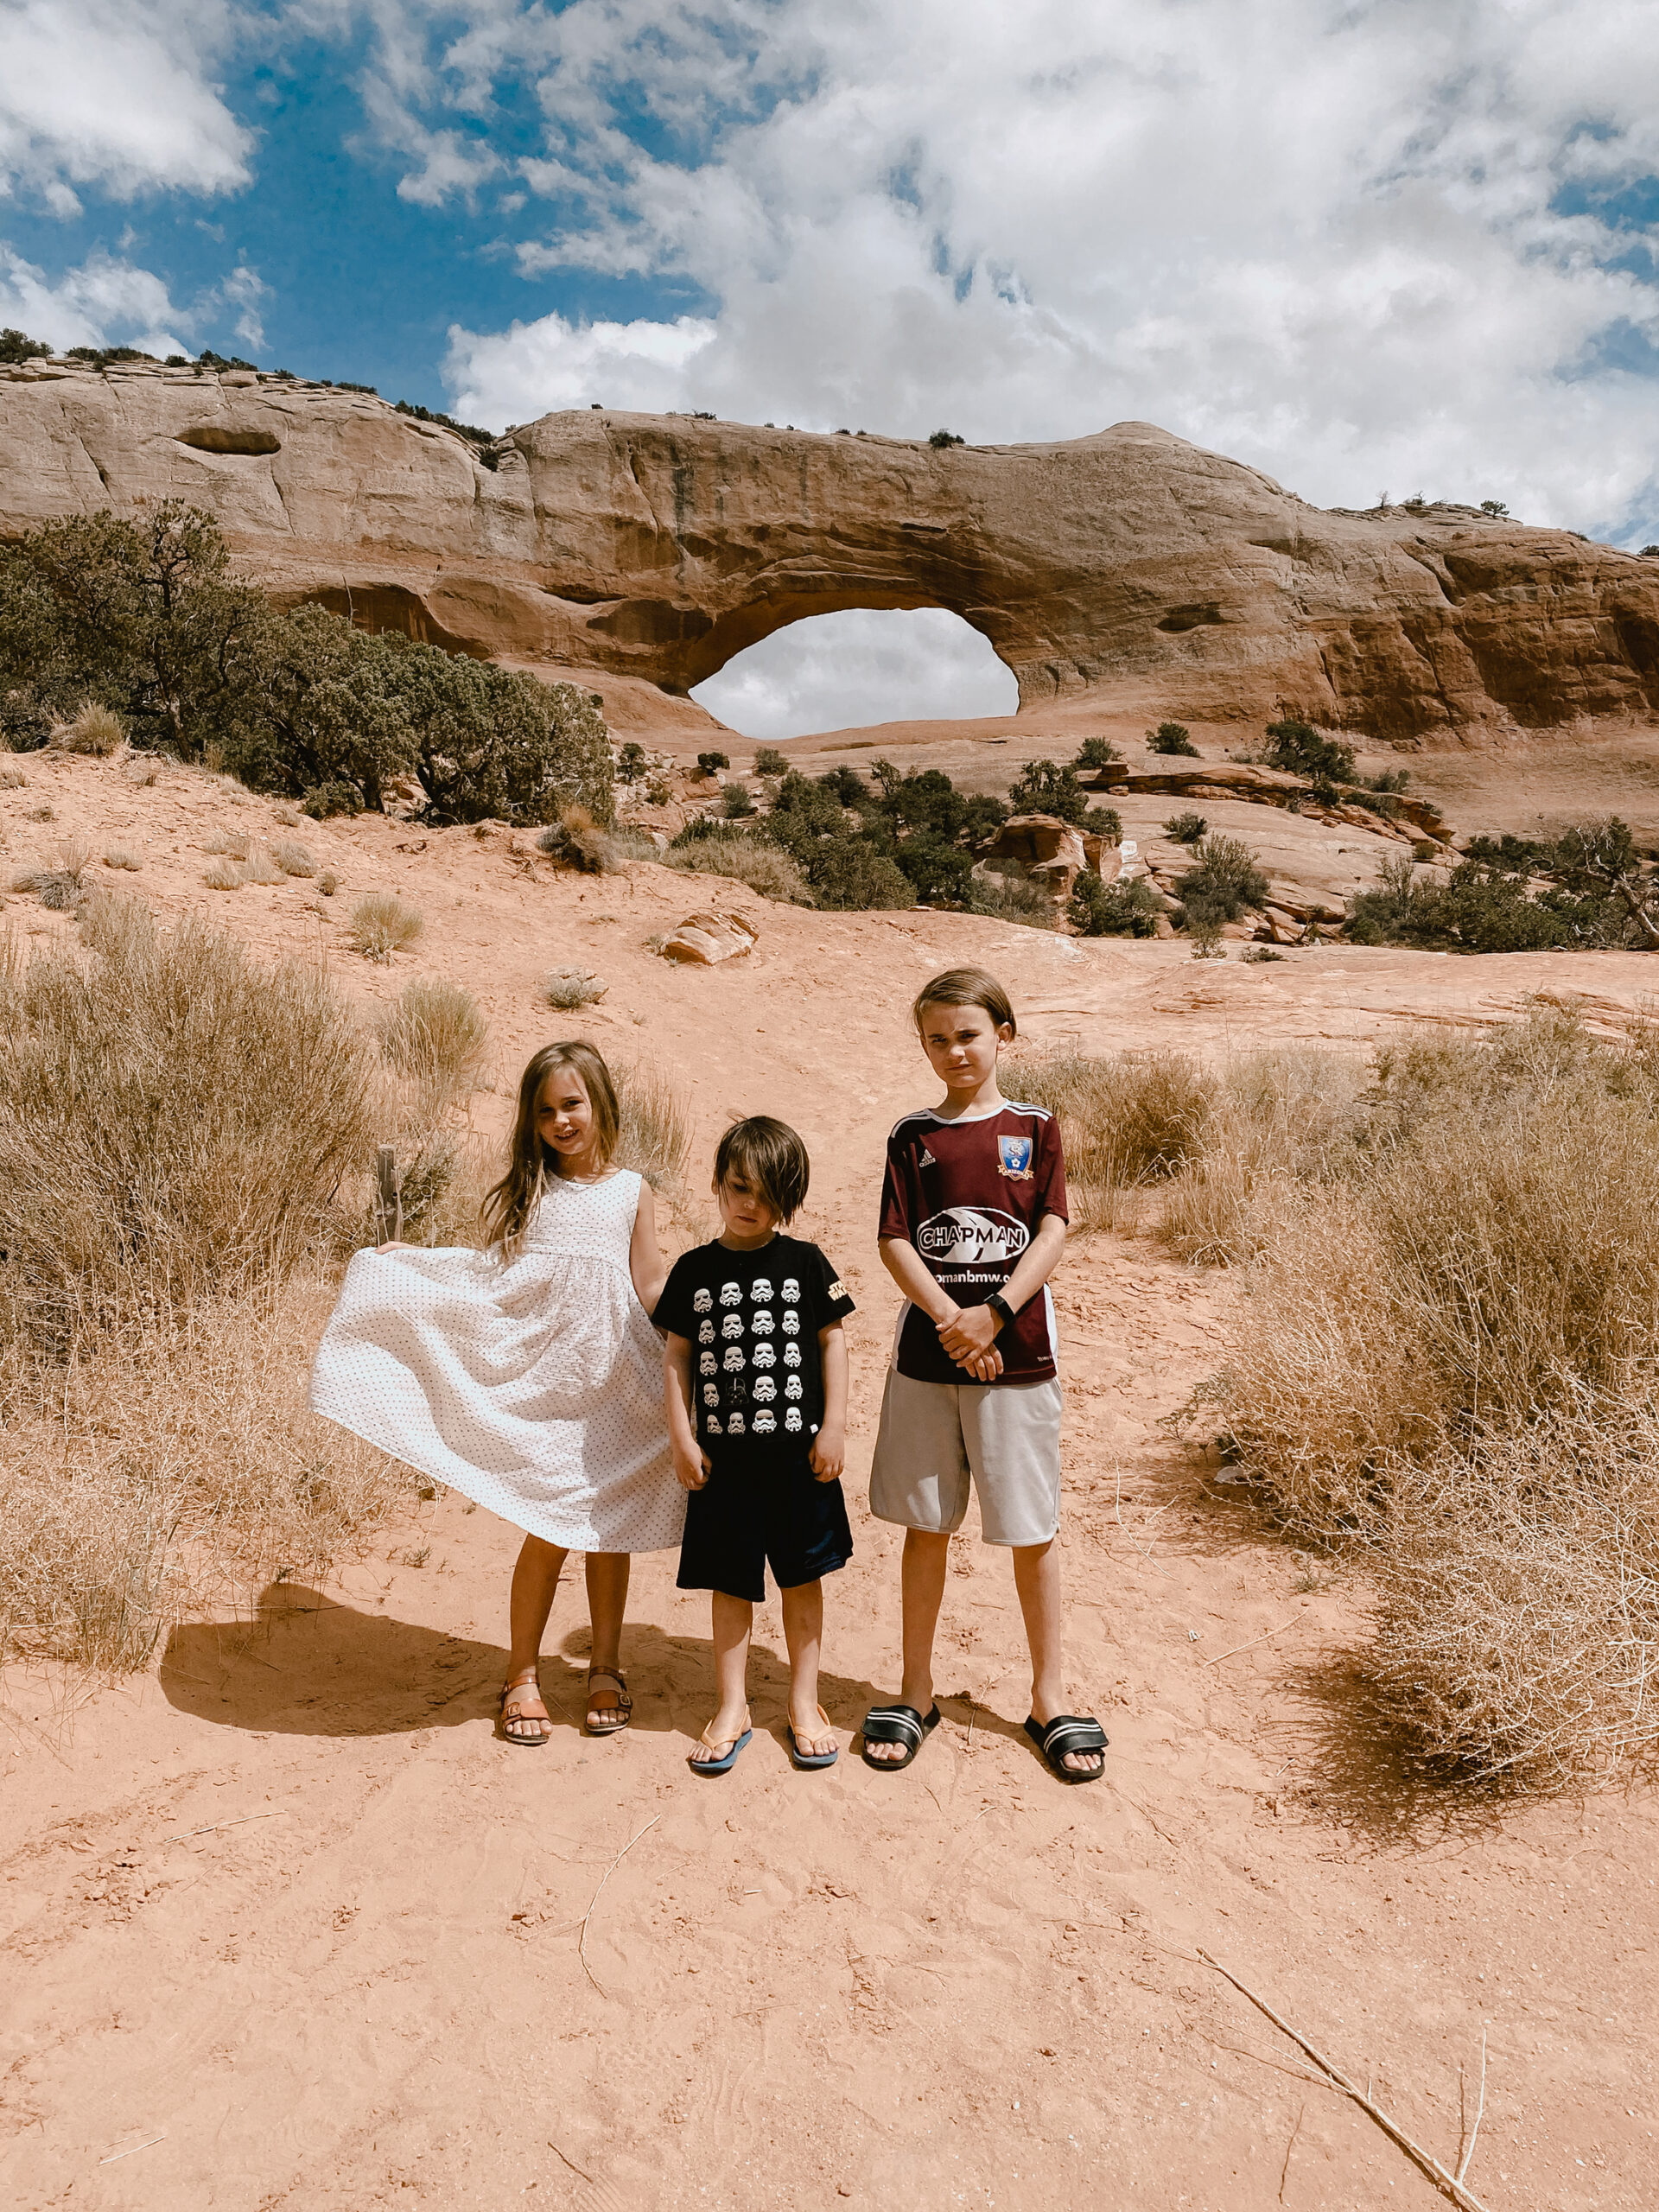 a pit stop in moab, utah during our summer road trip of 2020. #moabutah #getoutside #archesnationalpark